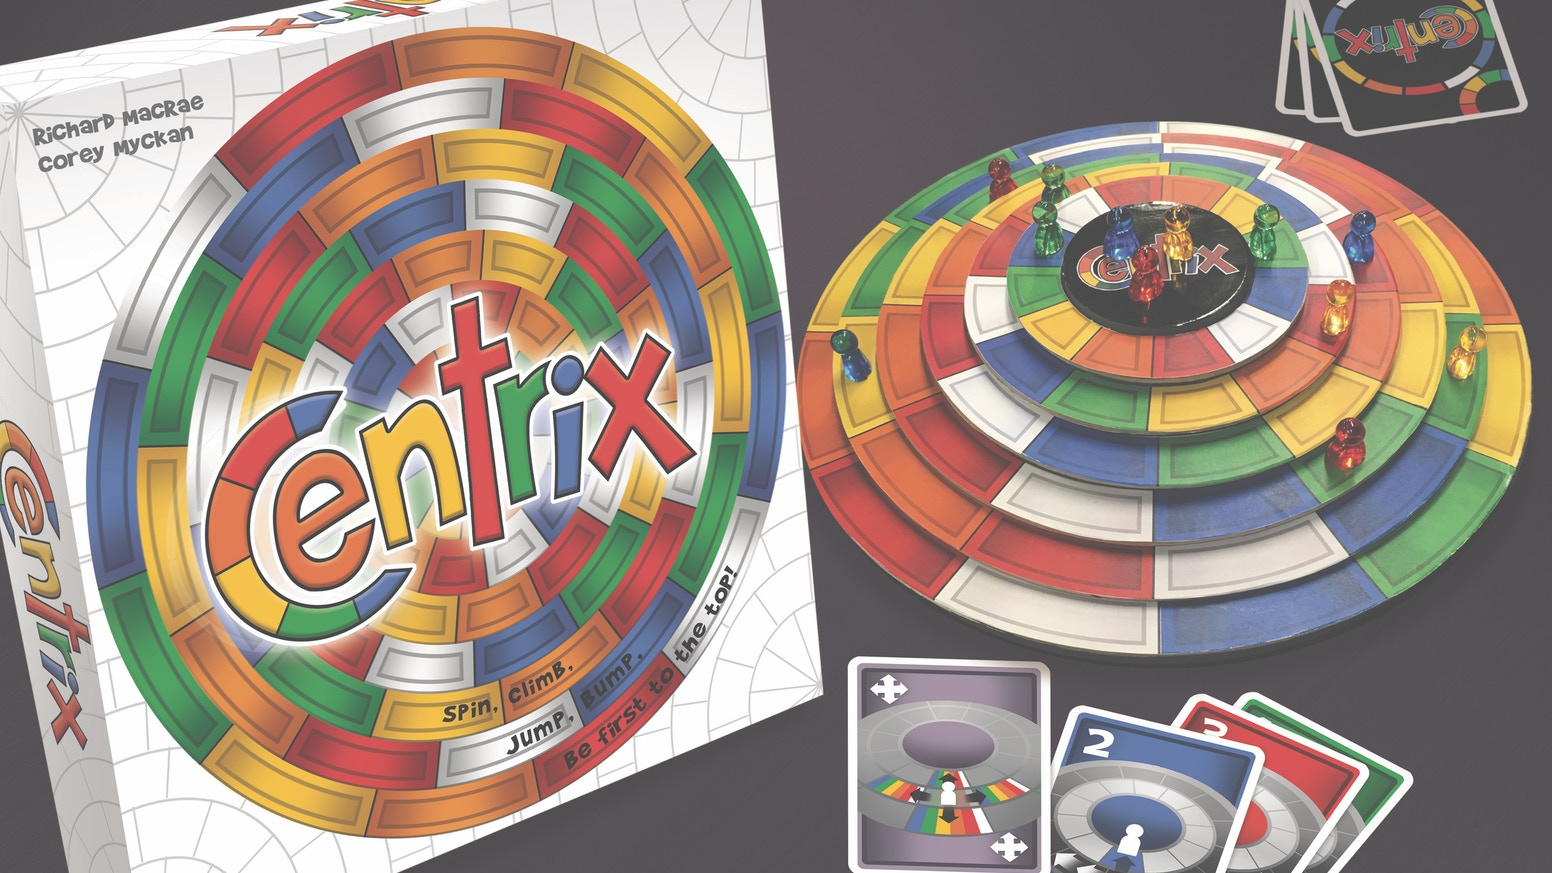 Centrix A Spinning Jumping Bumping 3d Tabletop Game By Richard